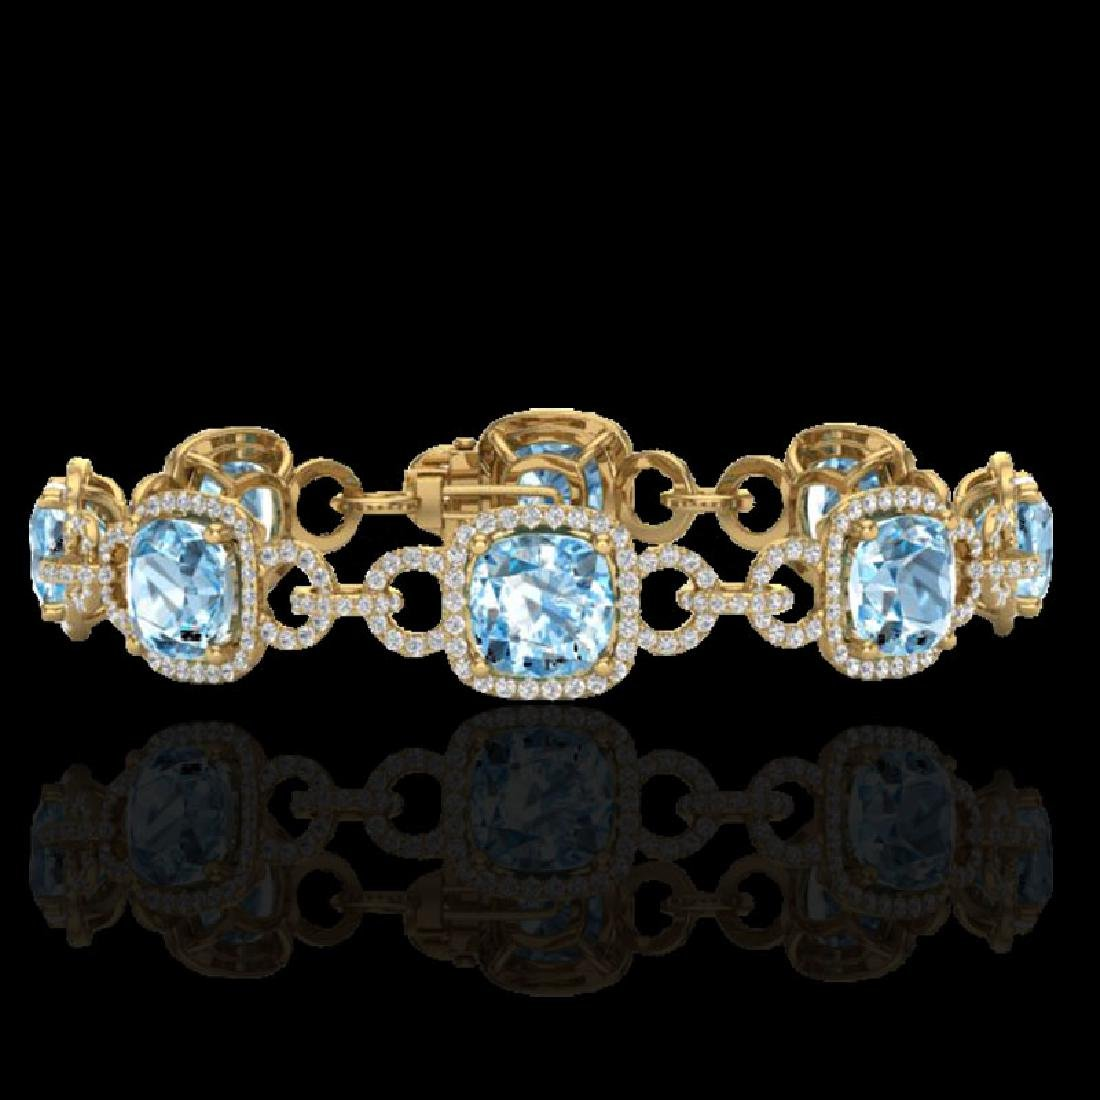 30 CTW Topaz & Micro VS/SI Diamond Bracelet 14K Yellow